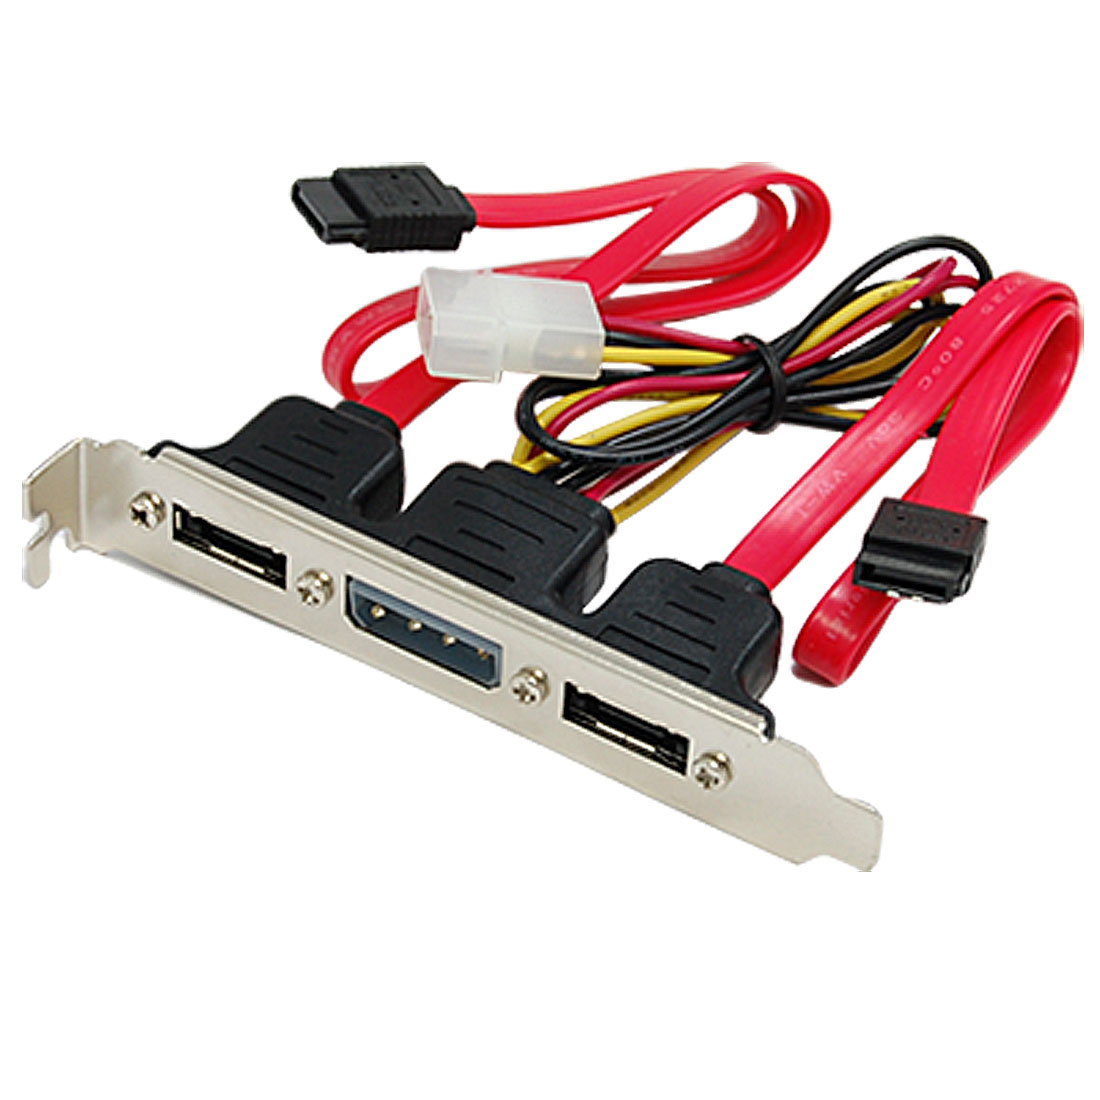 2 Port eSATA + 4 Pin Power Bracket Slot to SATA Cable